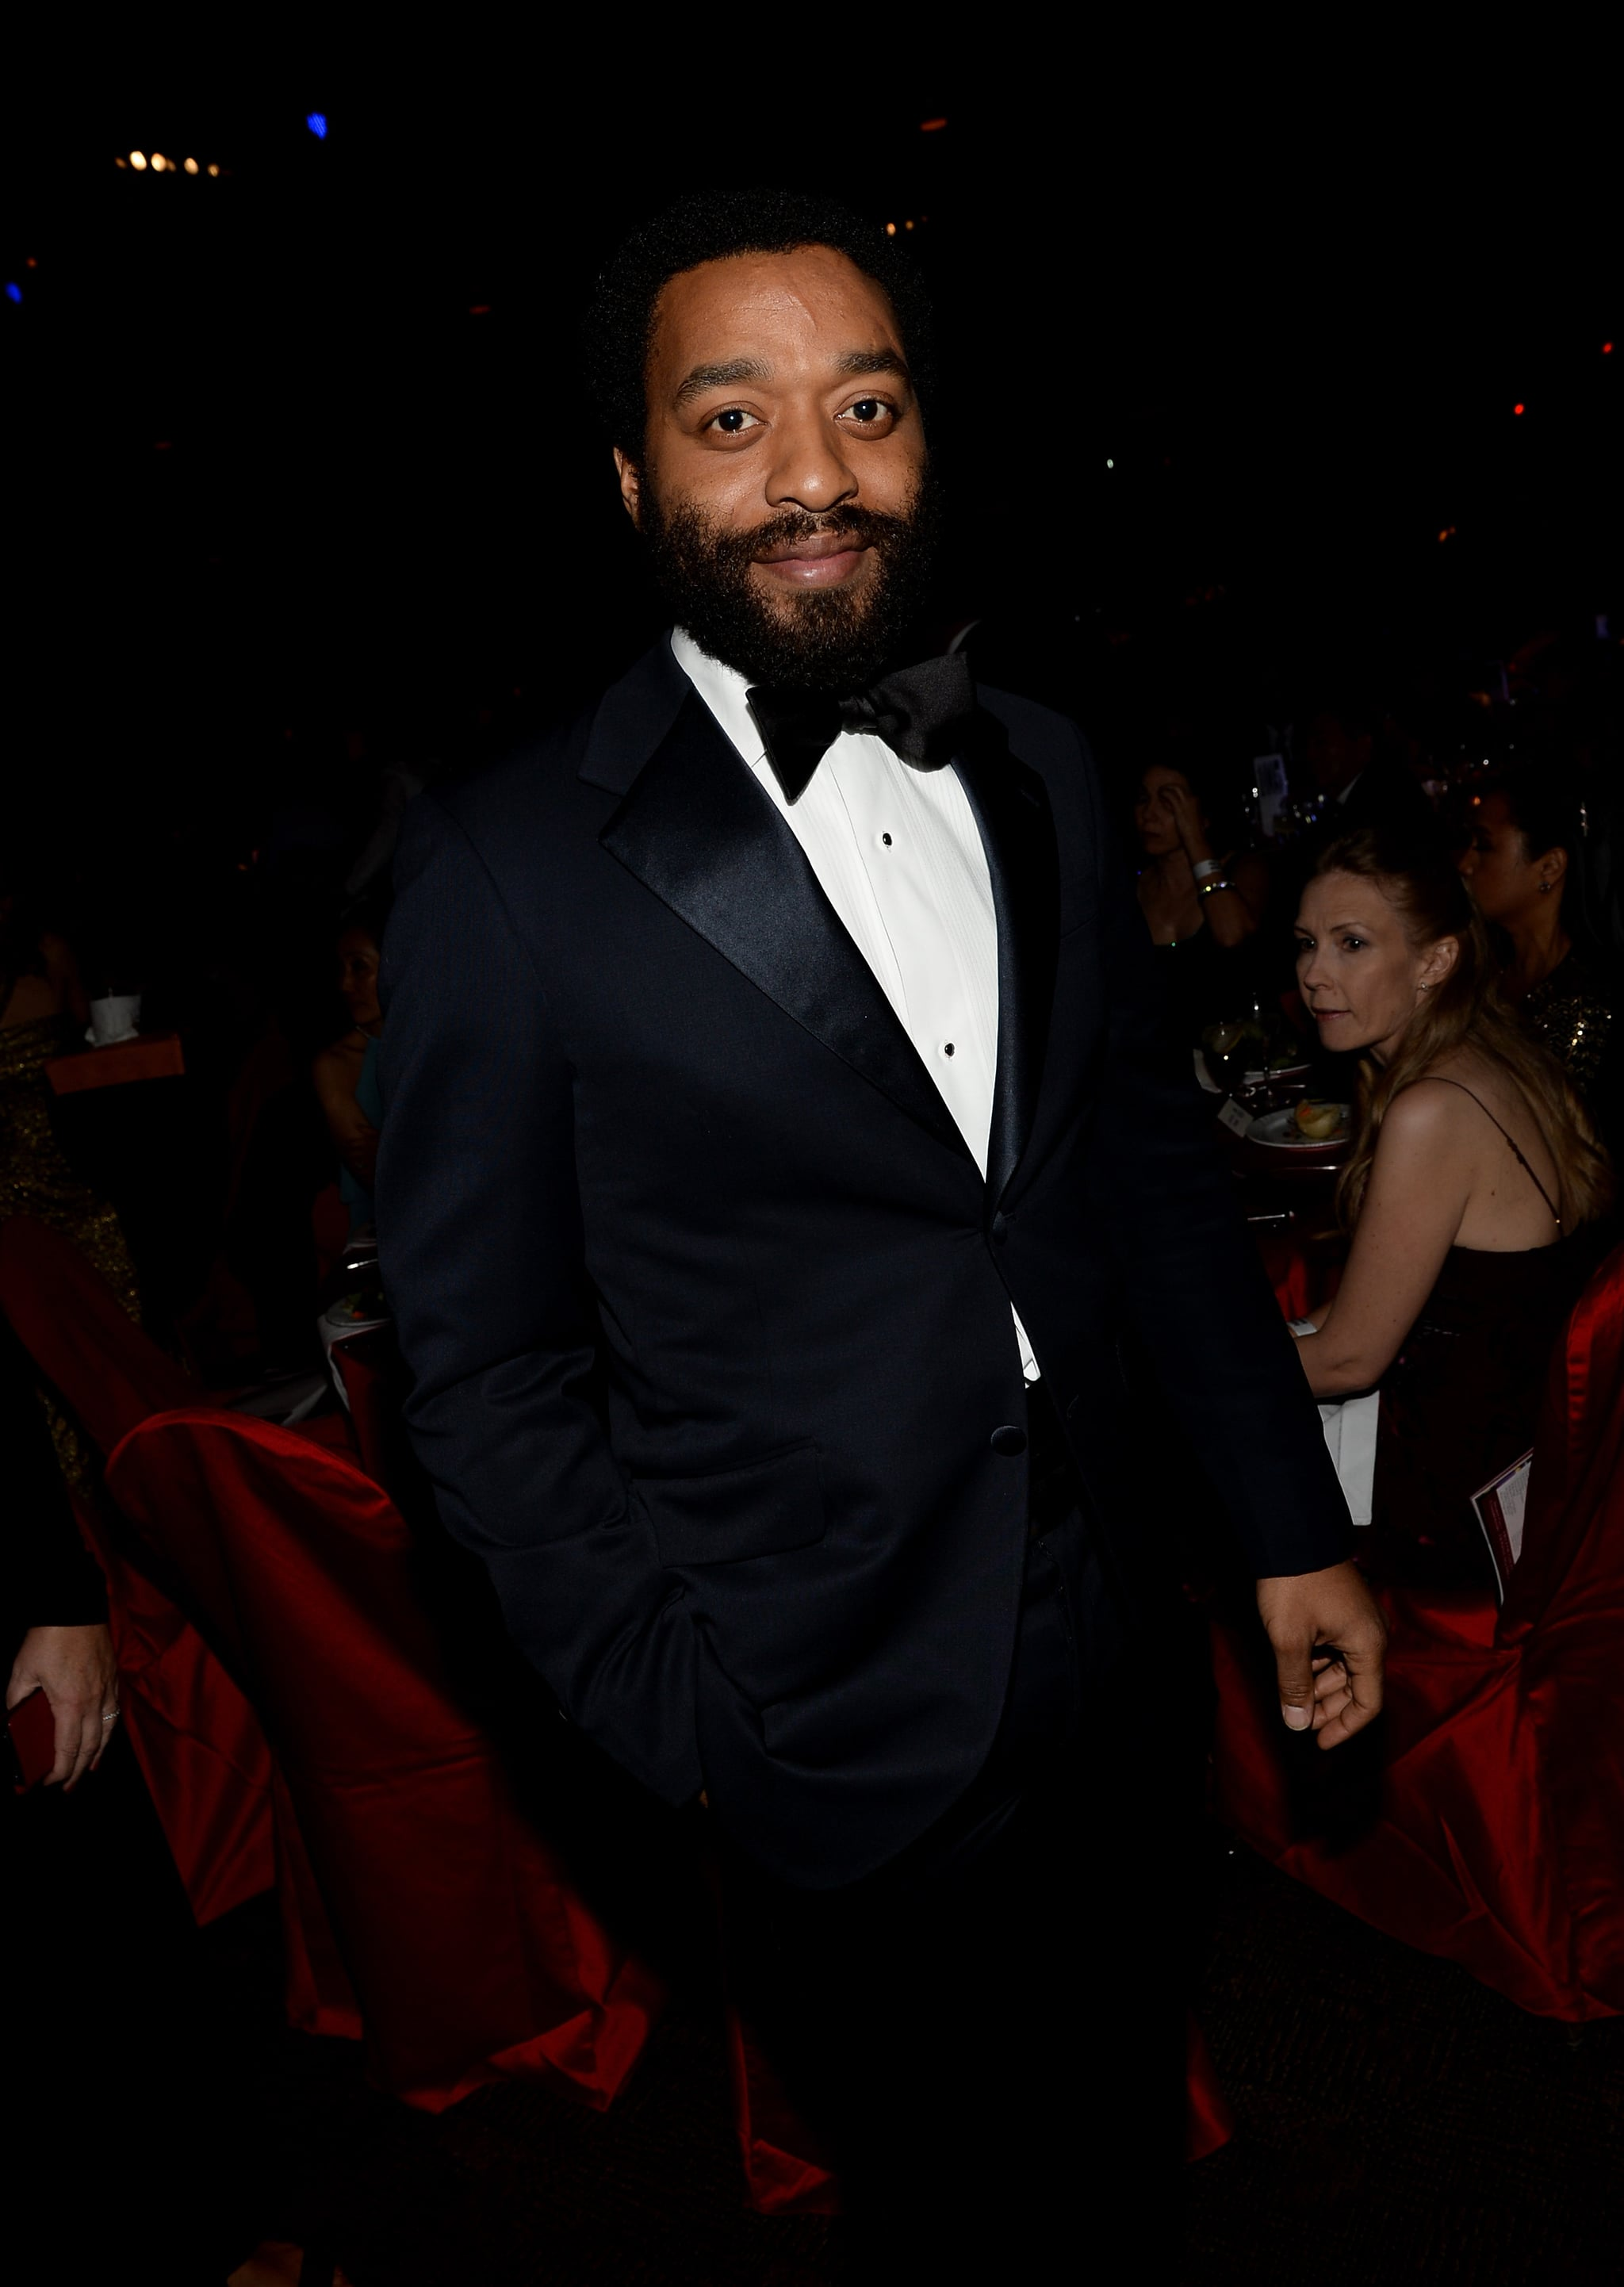 Chiwetel Ejiofor was on hand to celebrate his 12 Years a Slave director, Steve McQueen.